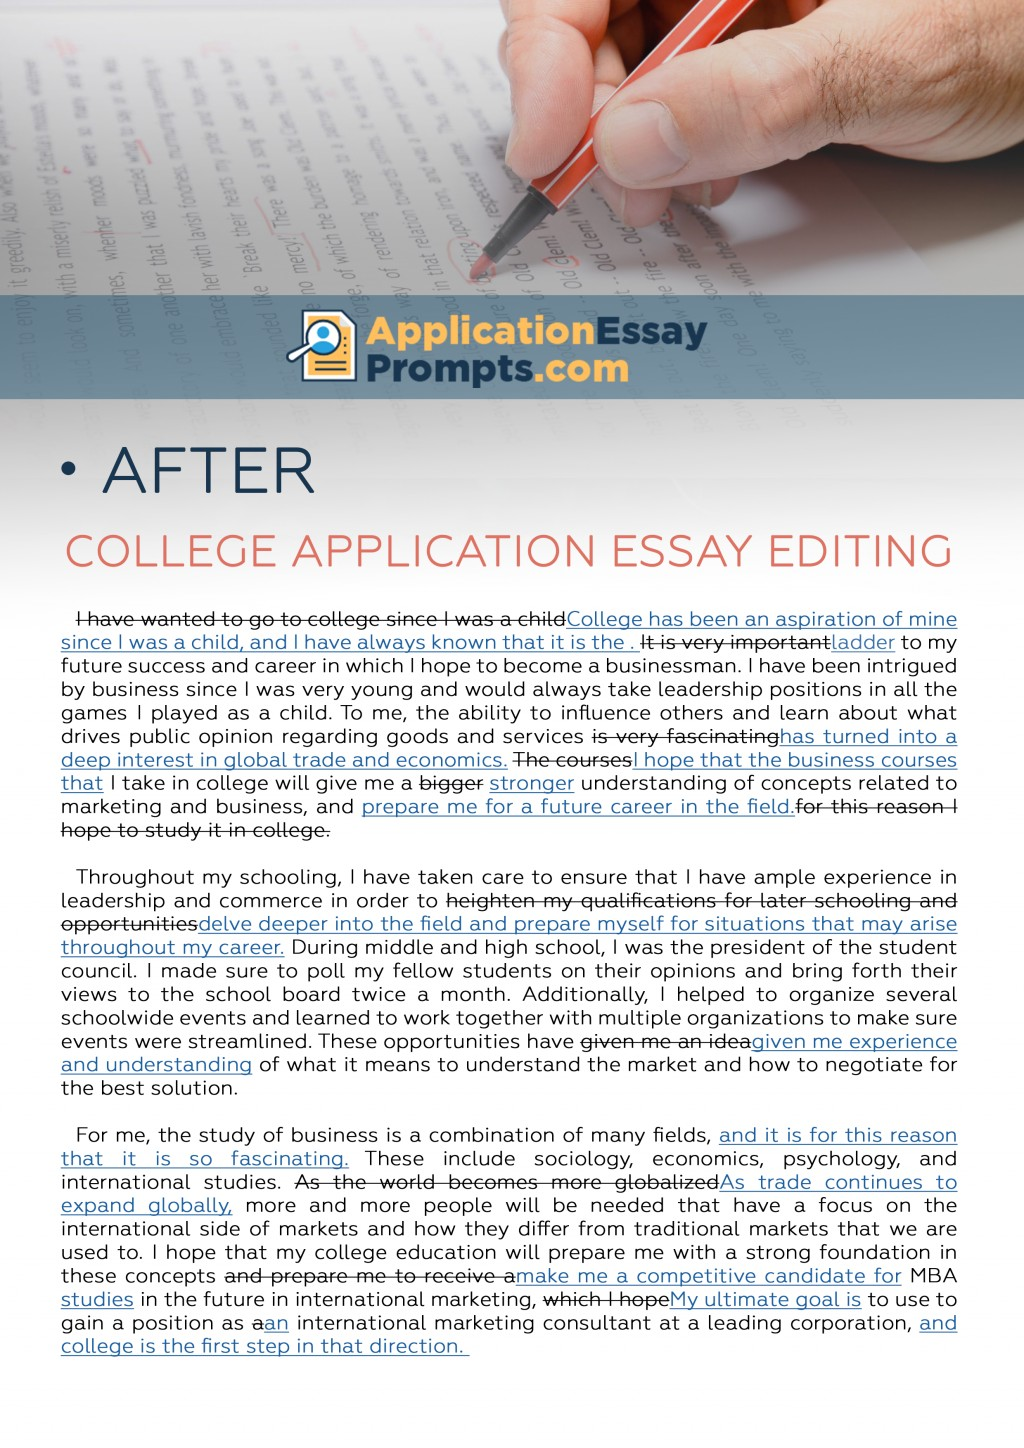 013 Essay Example Editing After College Unusual Service Application Services Free Large